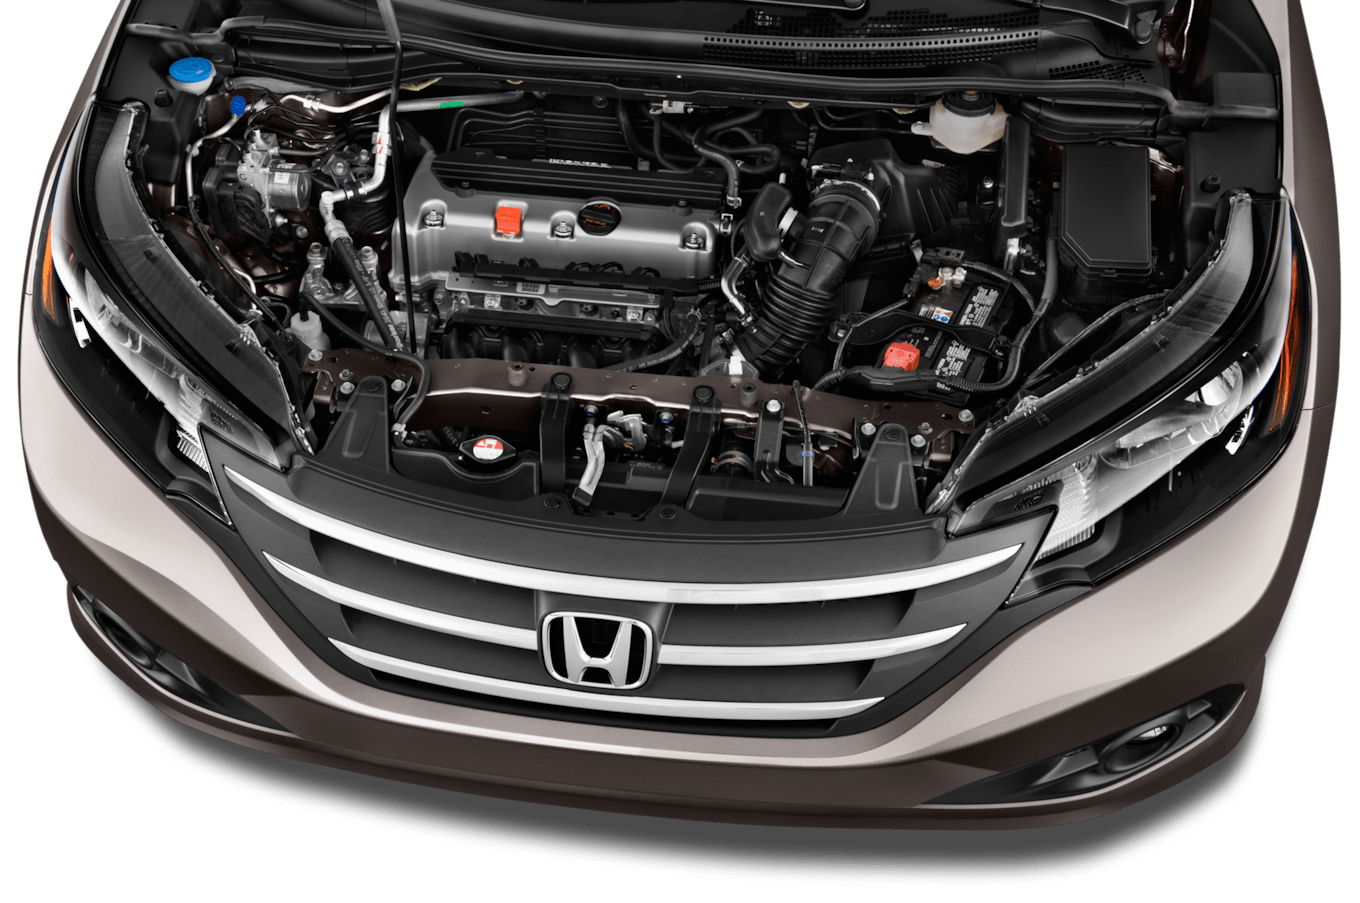 2004 honda cr v ex engine diagram